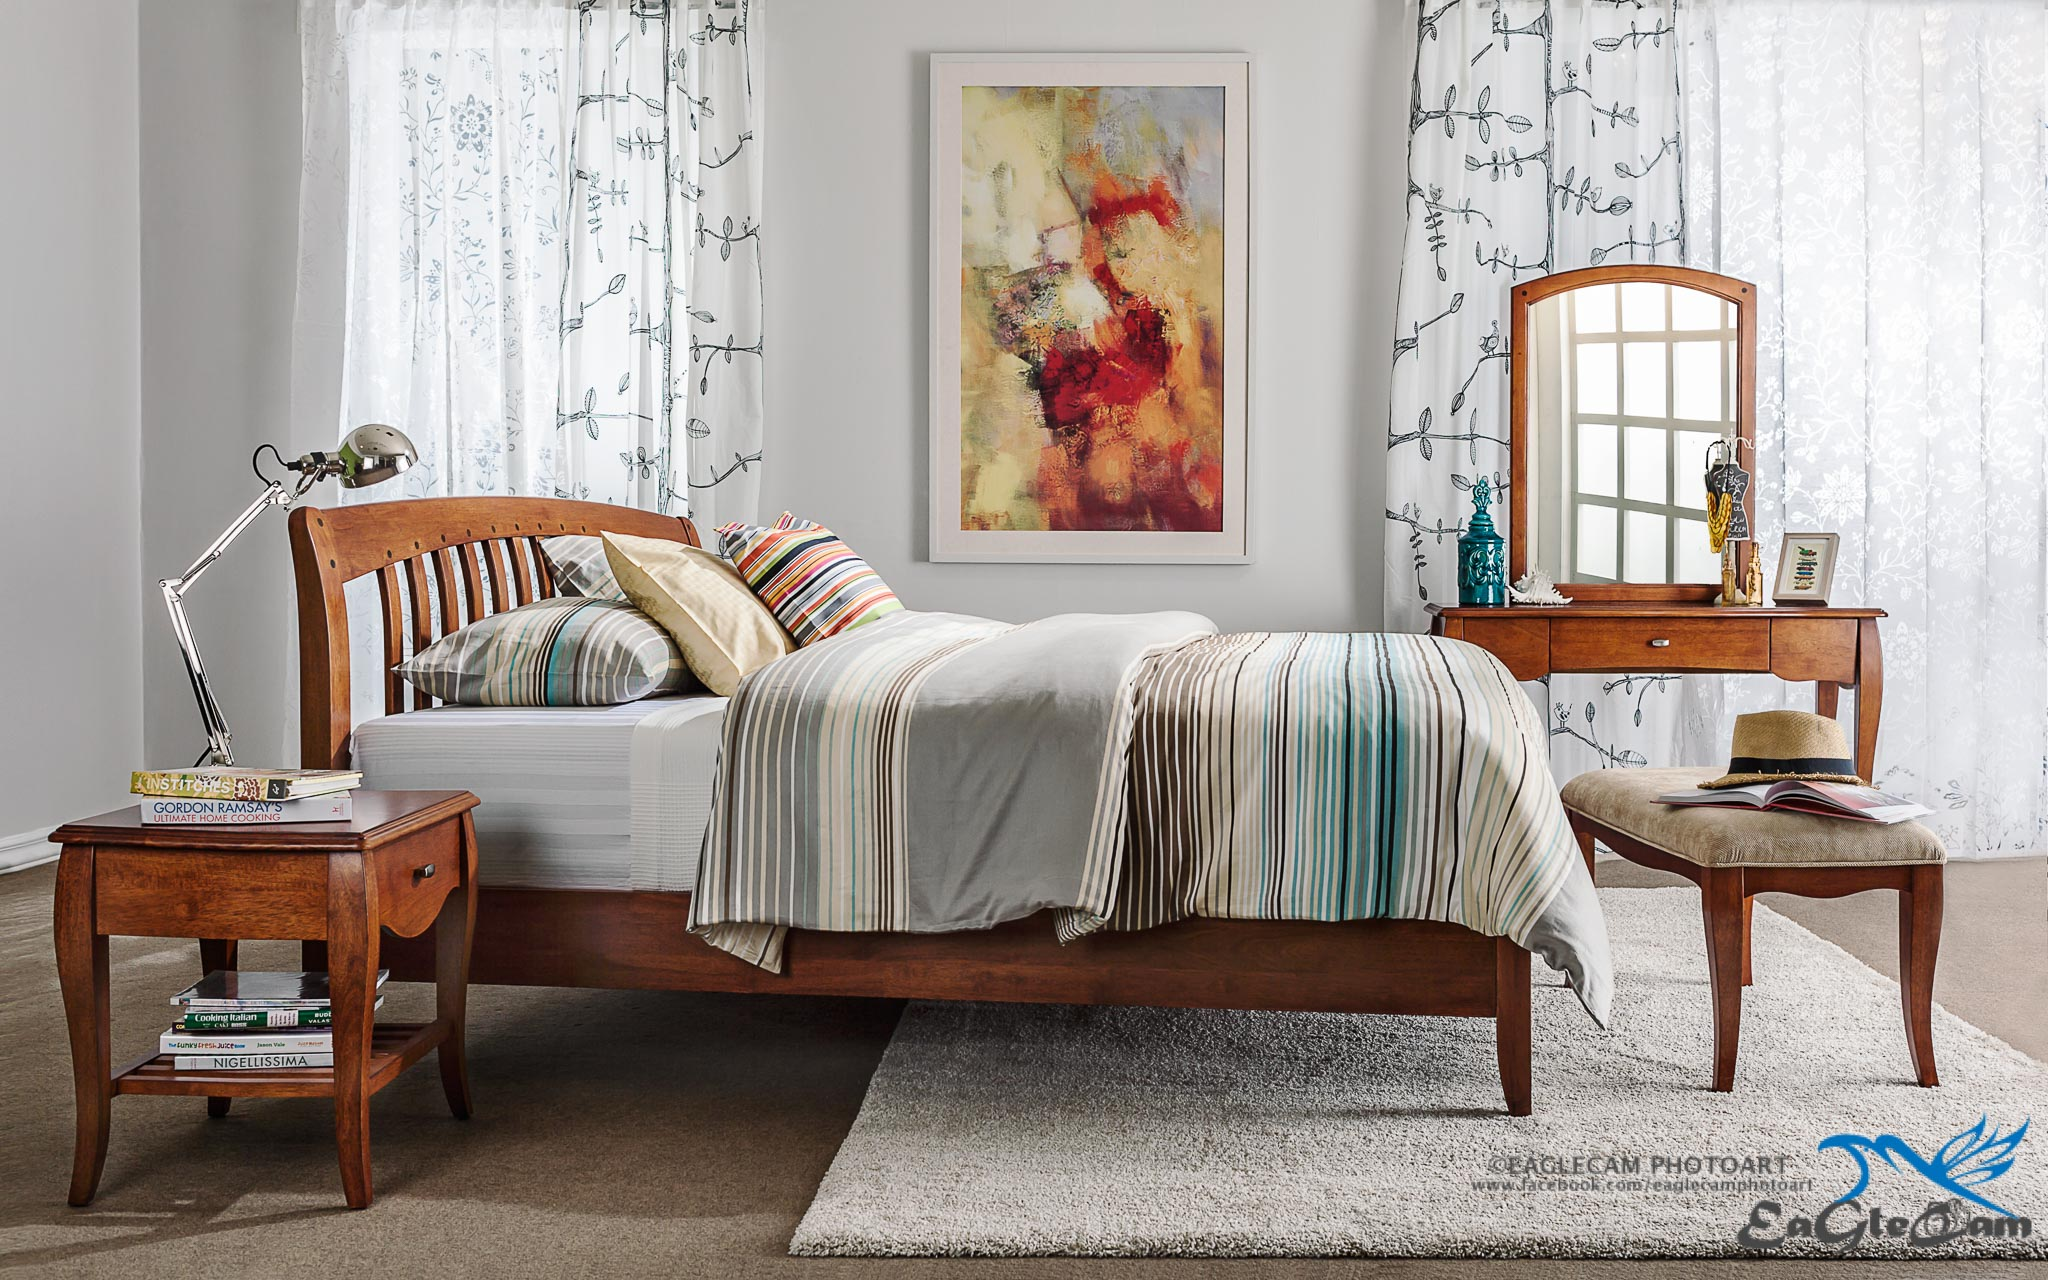 Furniture Photography_11